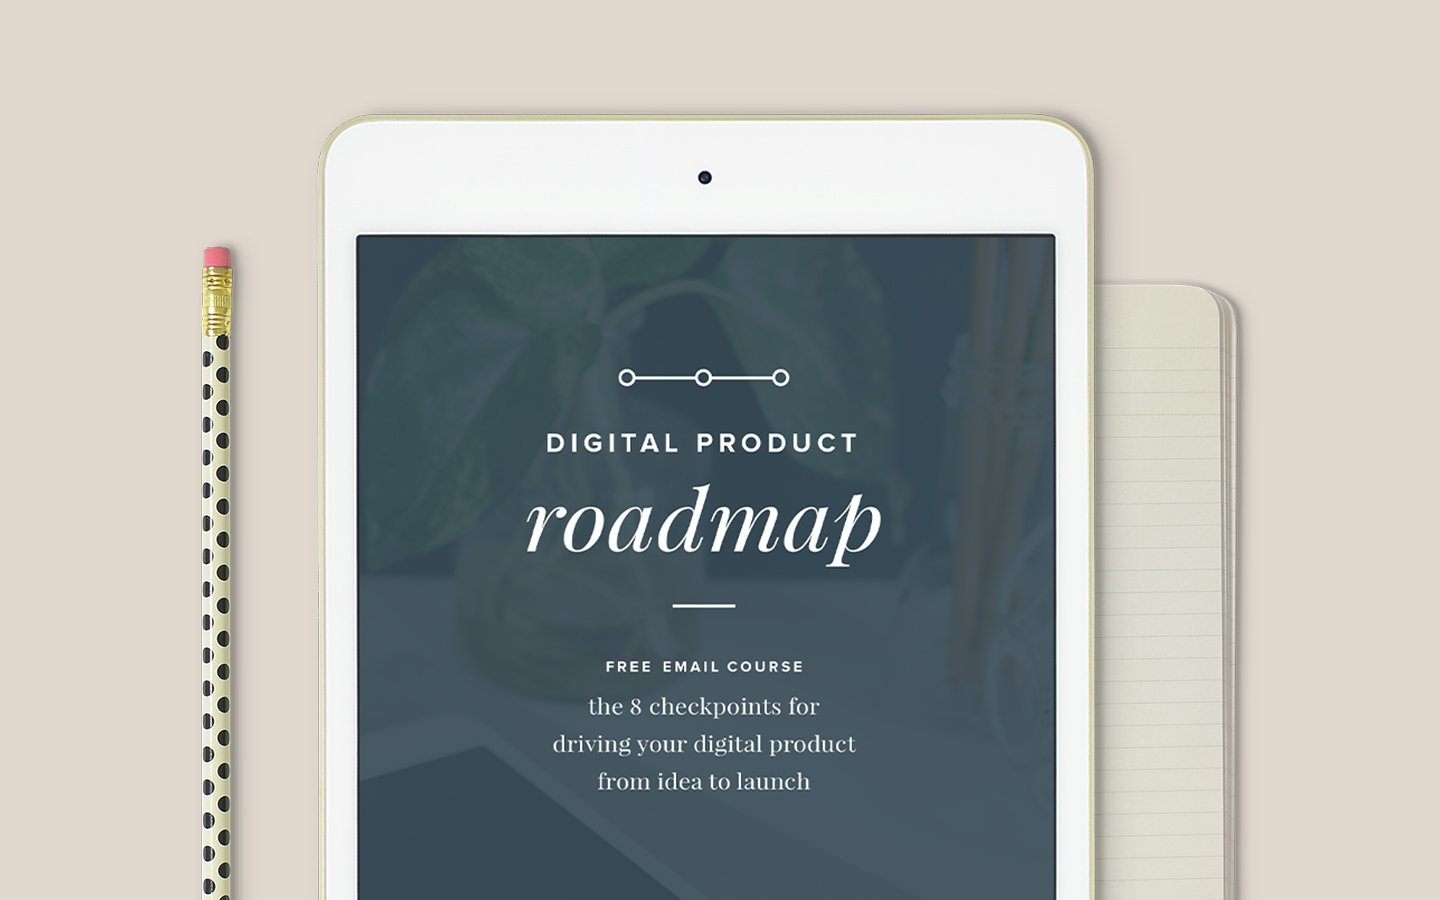 Free email course The Digital Product Roadmap – by Paper + Oats – www.paperandoats.com